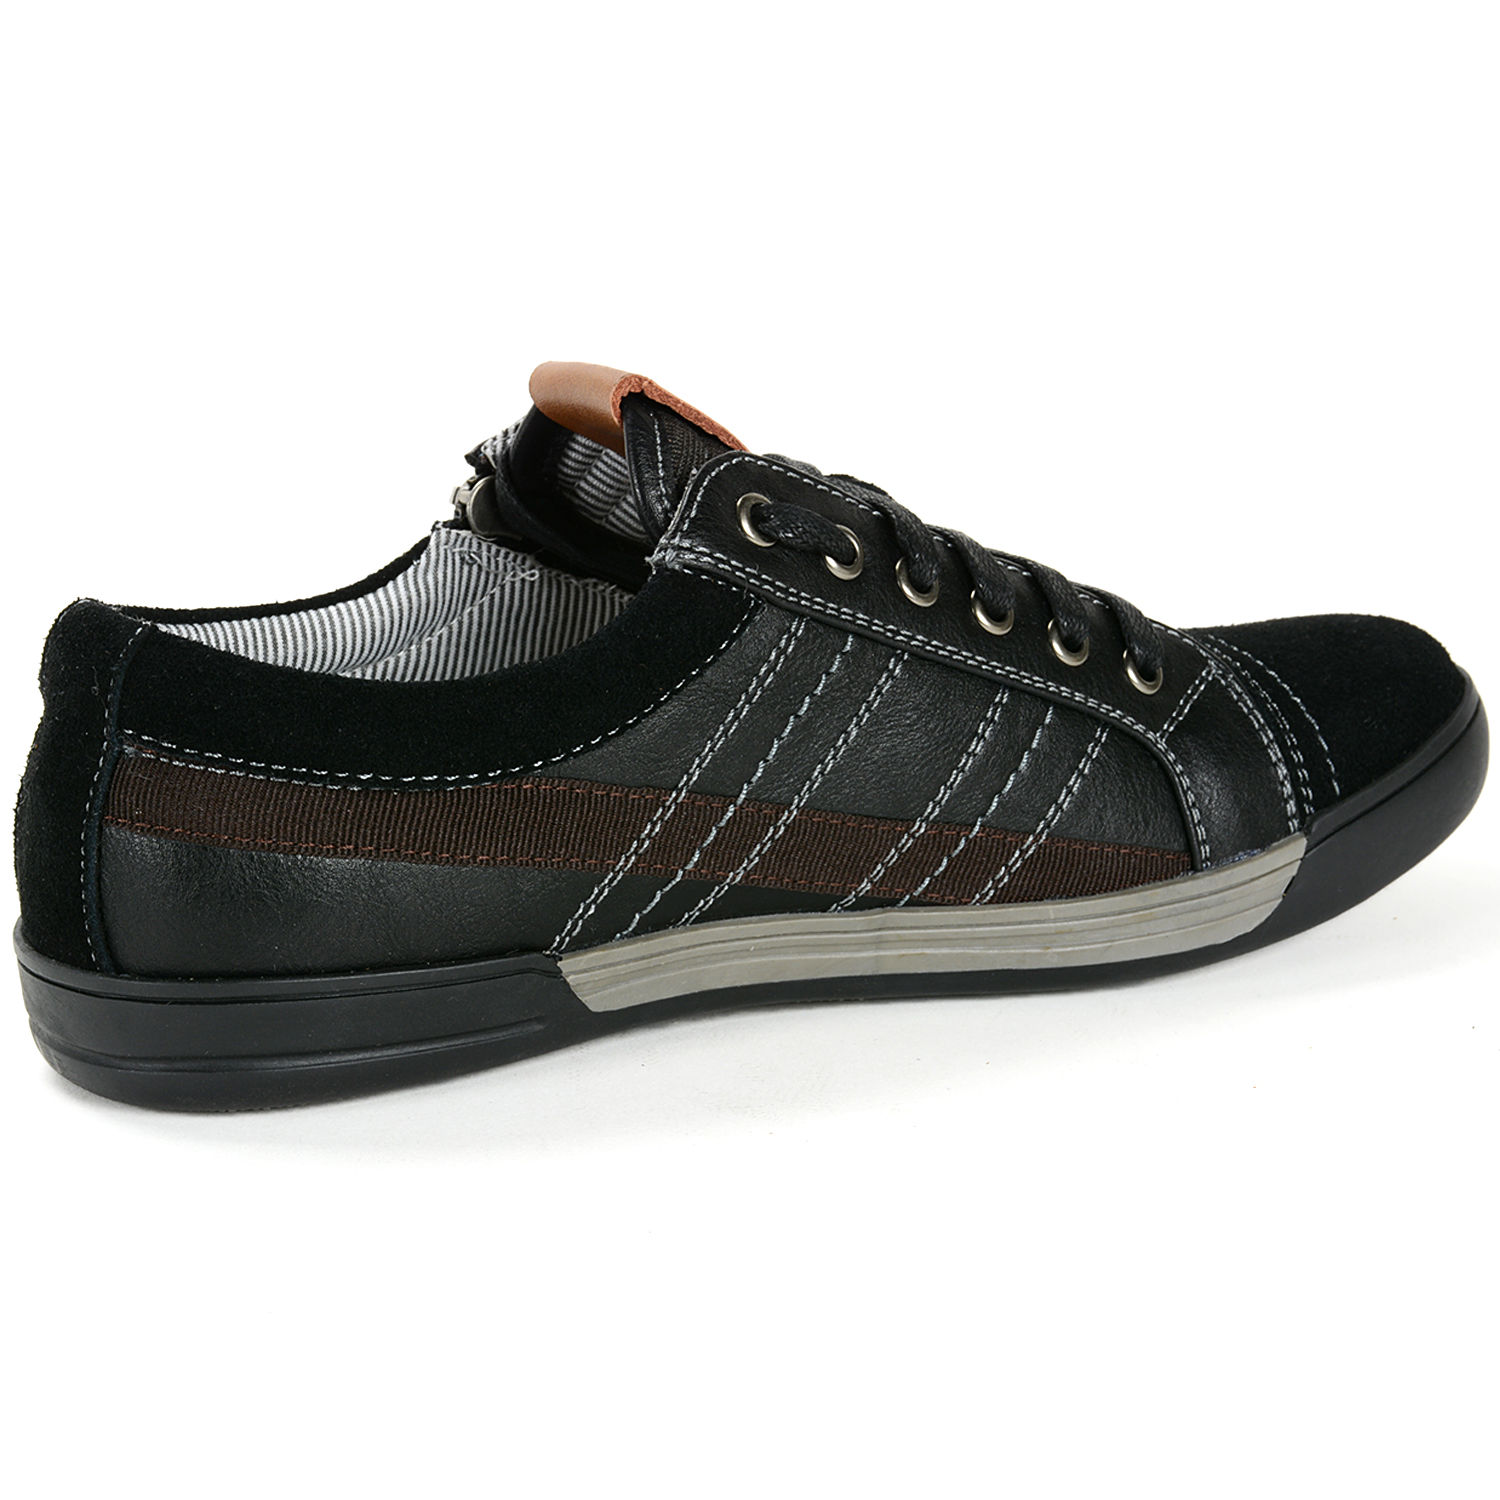 alpine swiss valon mens fashion sneakers low top dress or